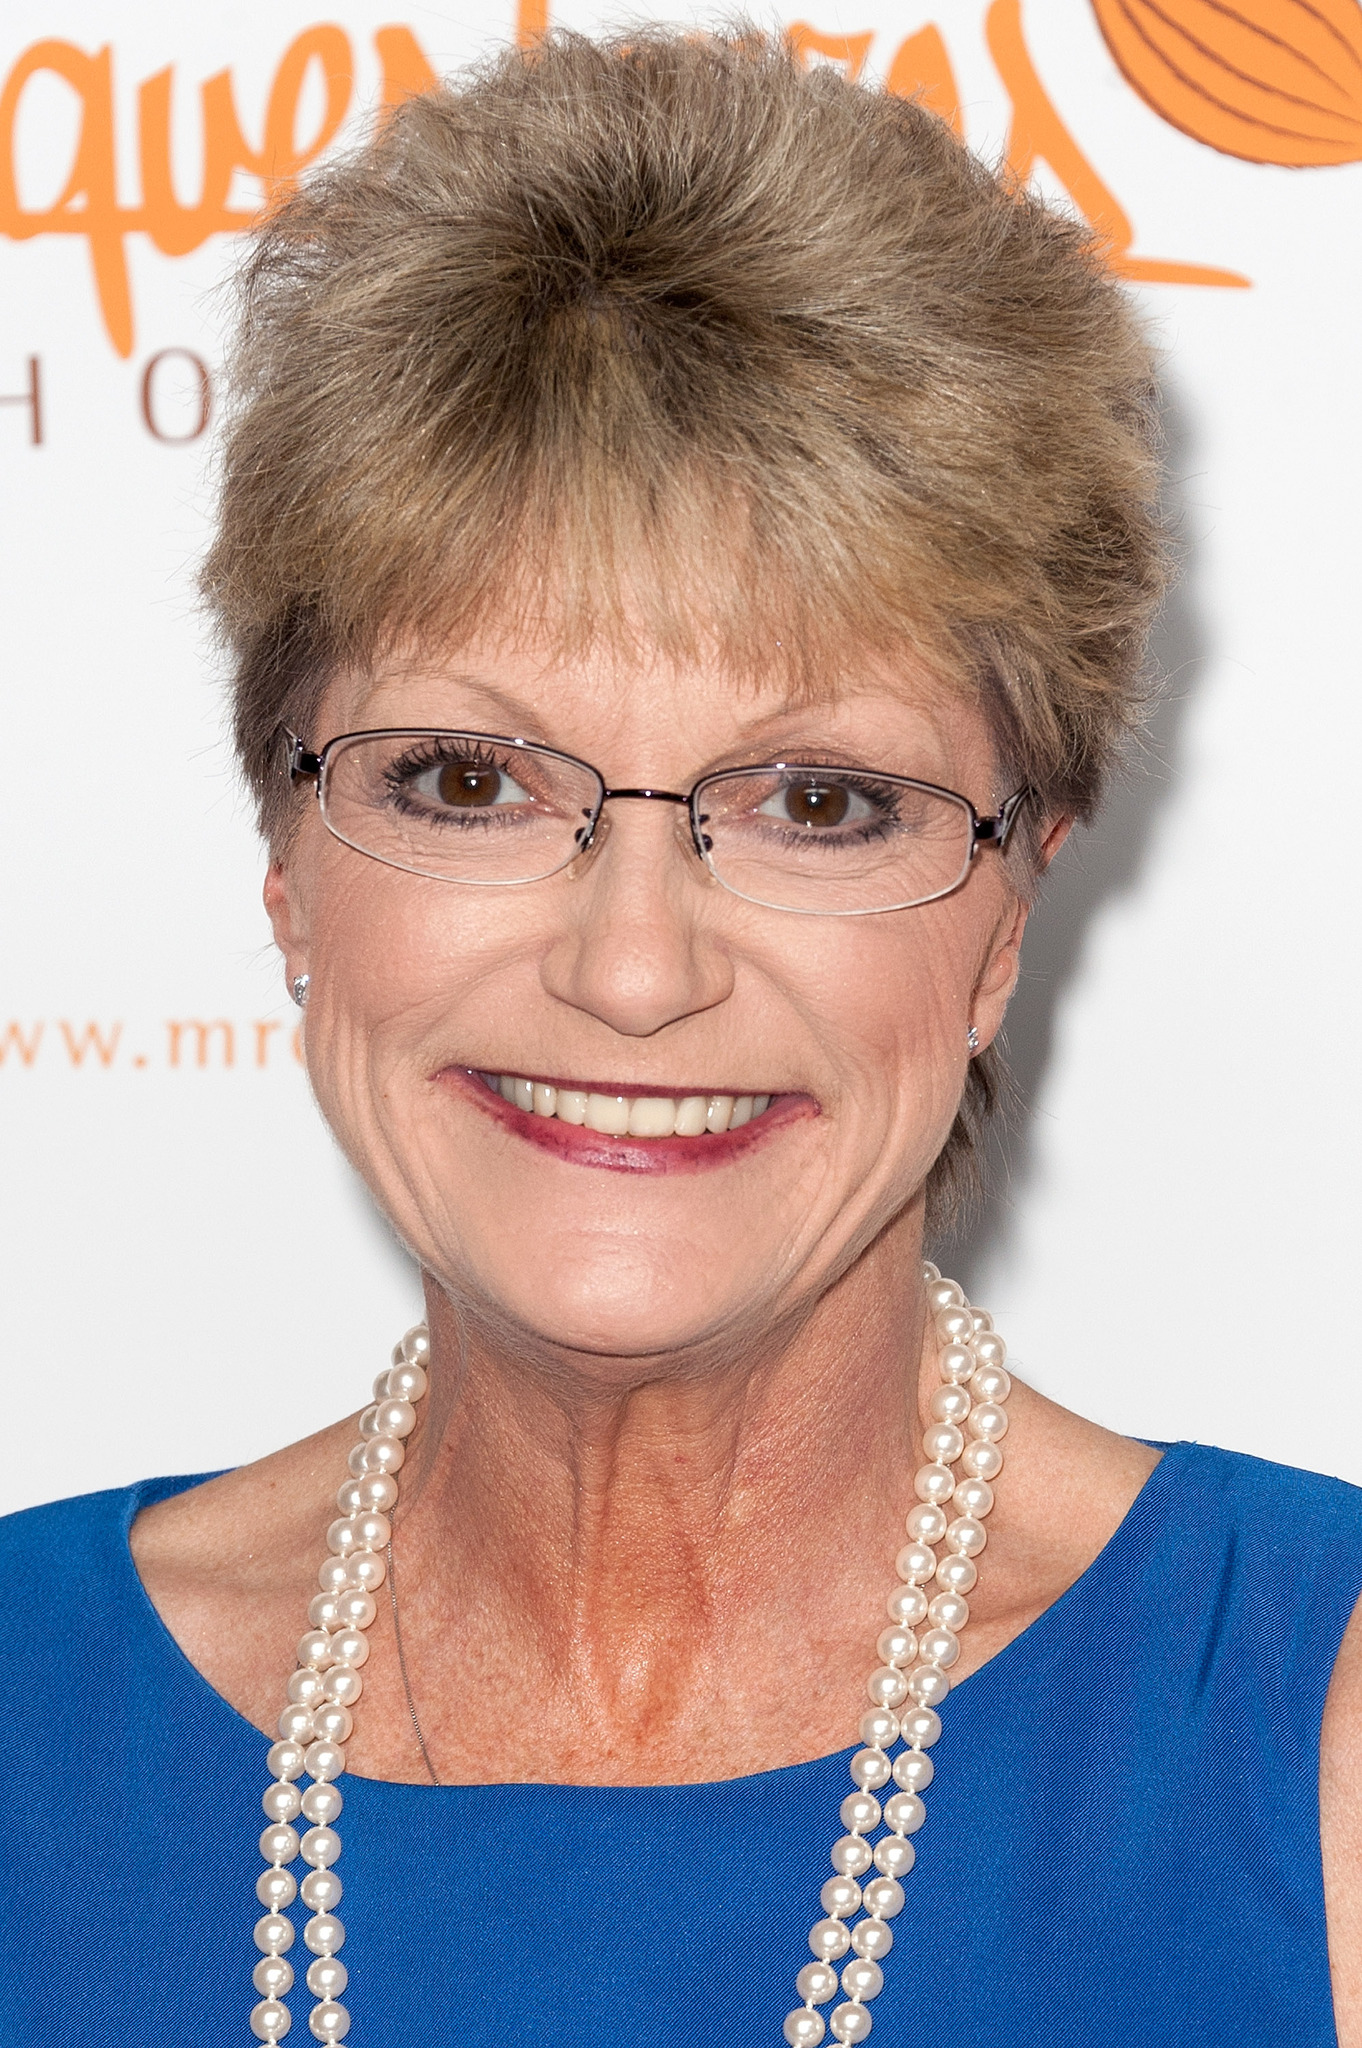 denise nickerson - photo #5